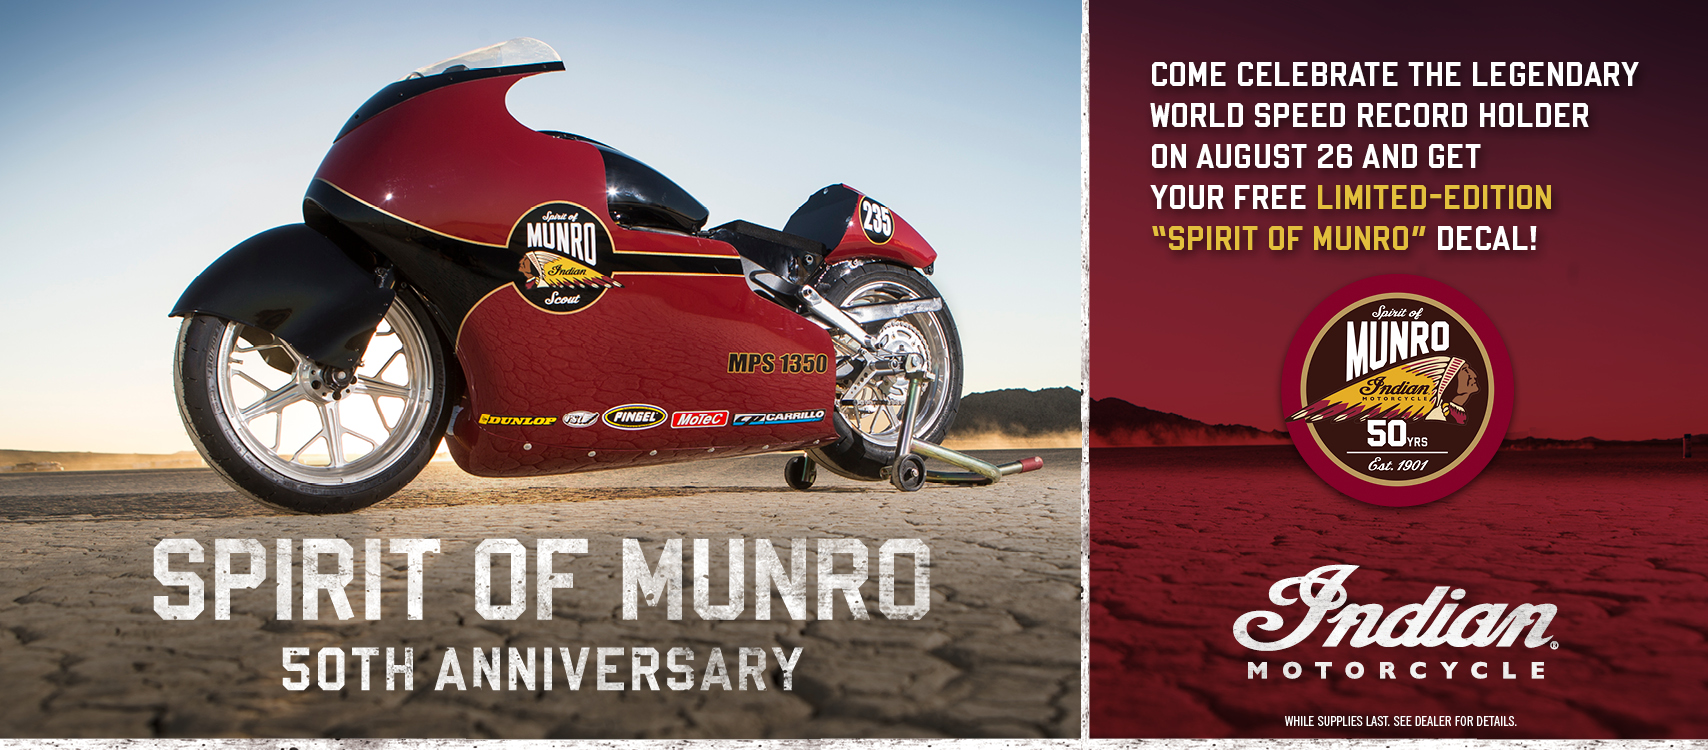 Celebrate the 50th Anniversary of Burt Munro's Land Speed Record with us on 8/26. Stop into the dealership for a limited edition 50th Anniversary Munro Decal – the same decal on the Spirit of Munro Indian Motorcycle bike.